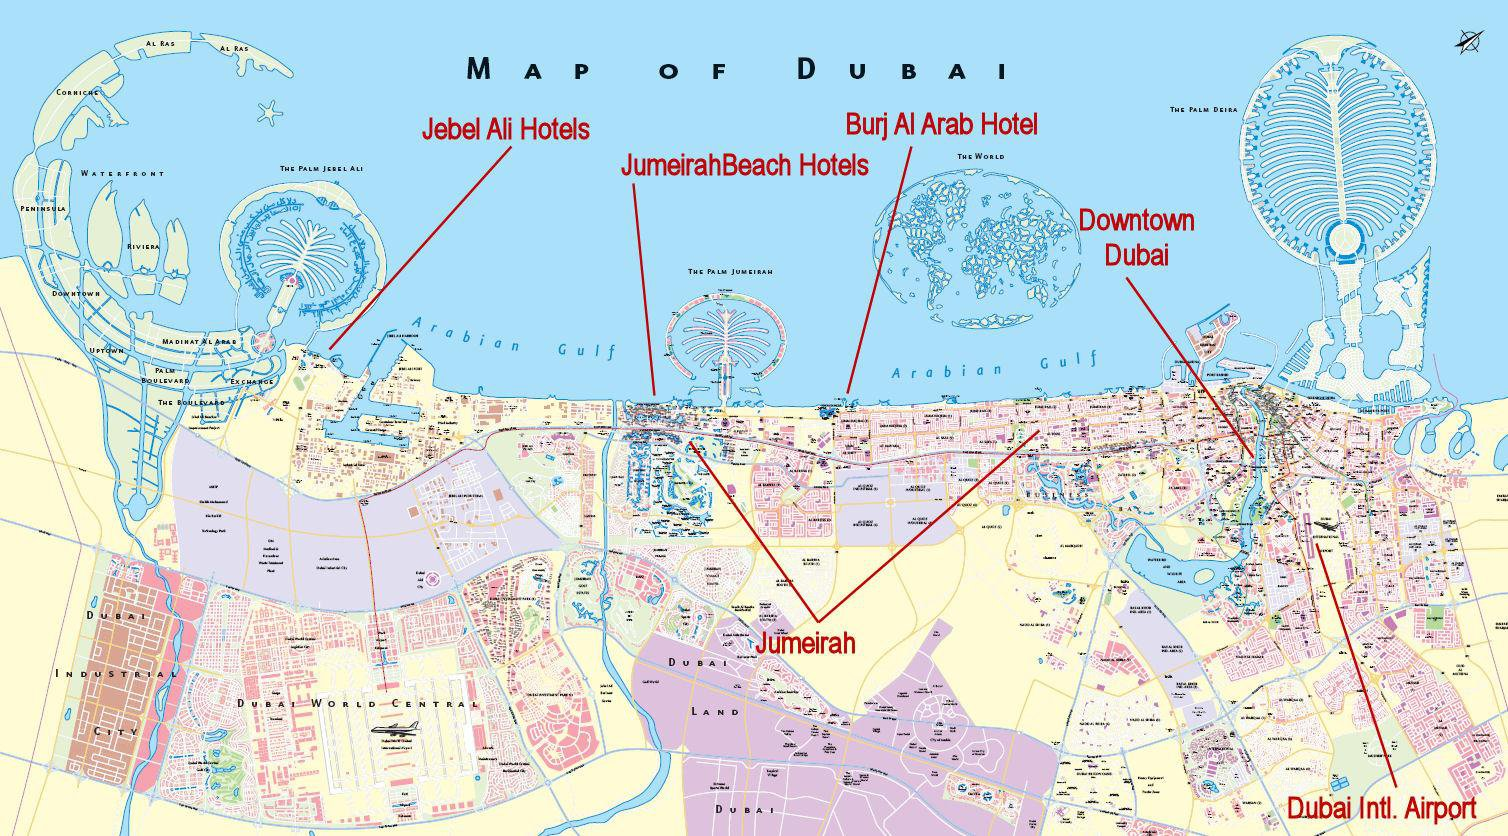 dubai pestel analysis of dubai tourism Swot analysis, forecast, scenario analysis, and risk analysis of oman is also included in the report the report also includes forecast of the economic growth through 2021.